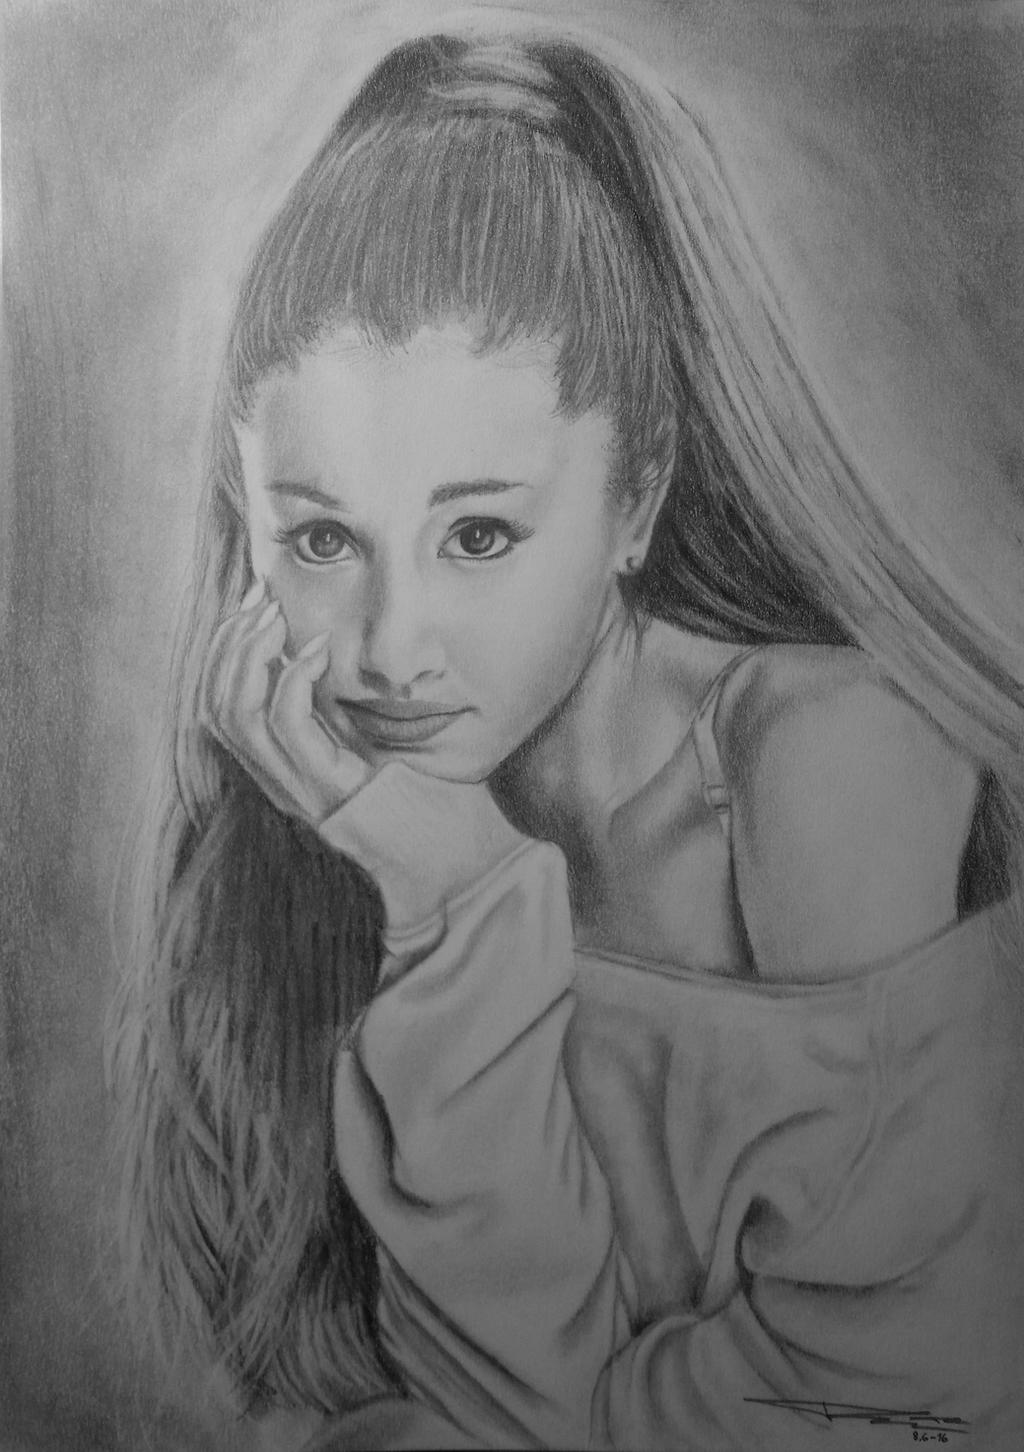 Ariana Grande Pencil Drawing By ArtDitional92 On DeviantArt